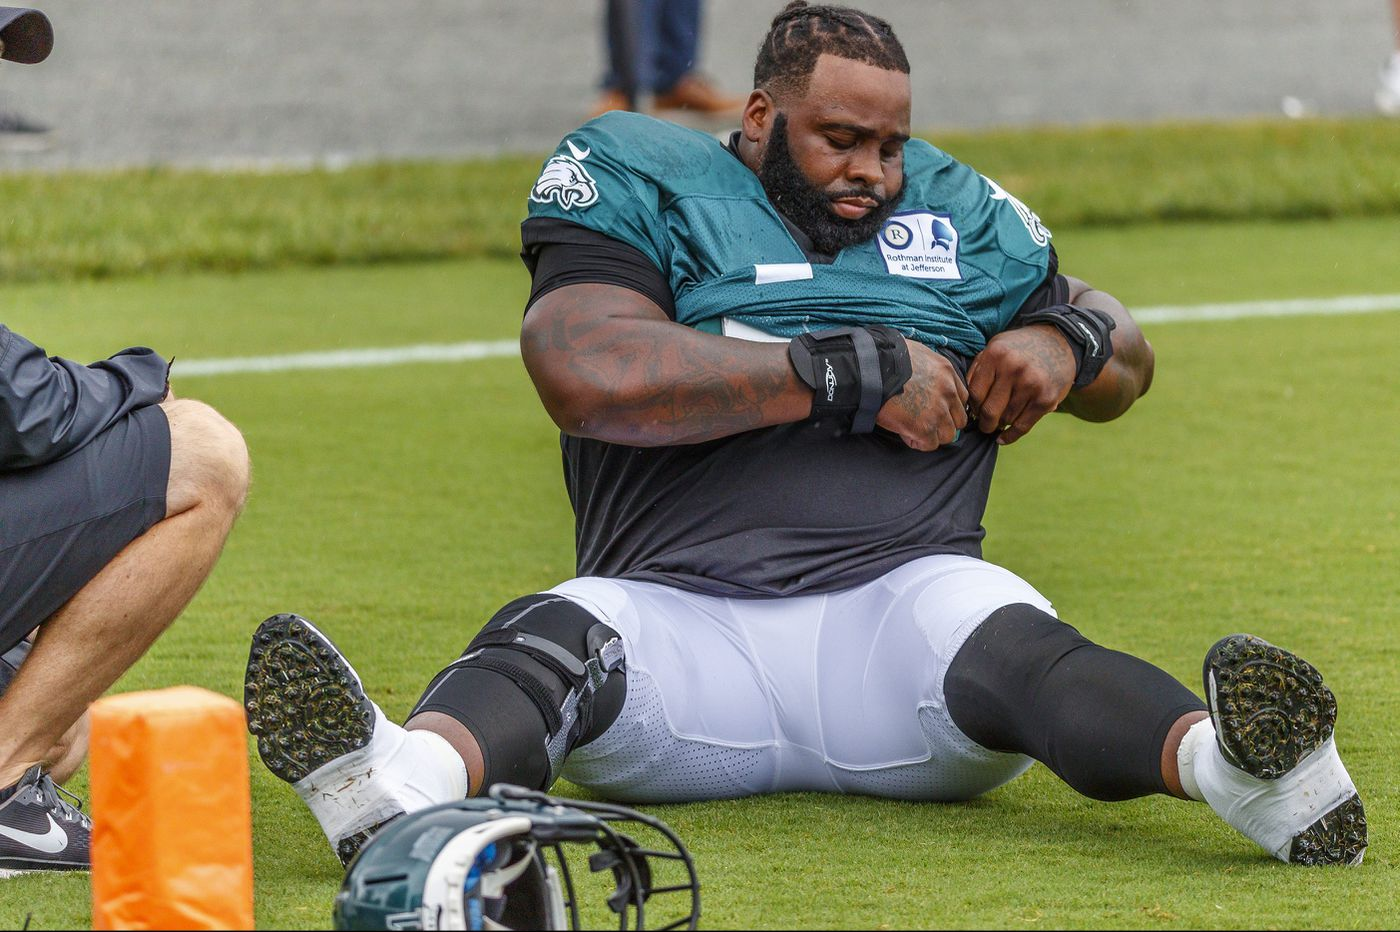 What will determine whether the Eagles contend for the Super Bowl?